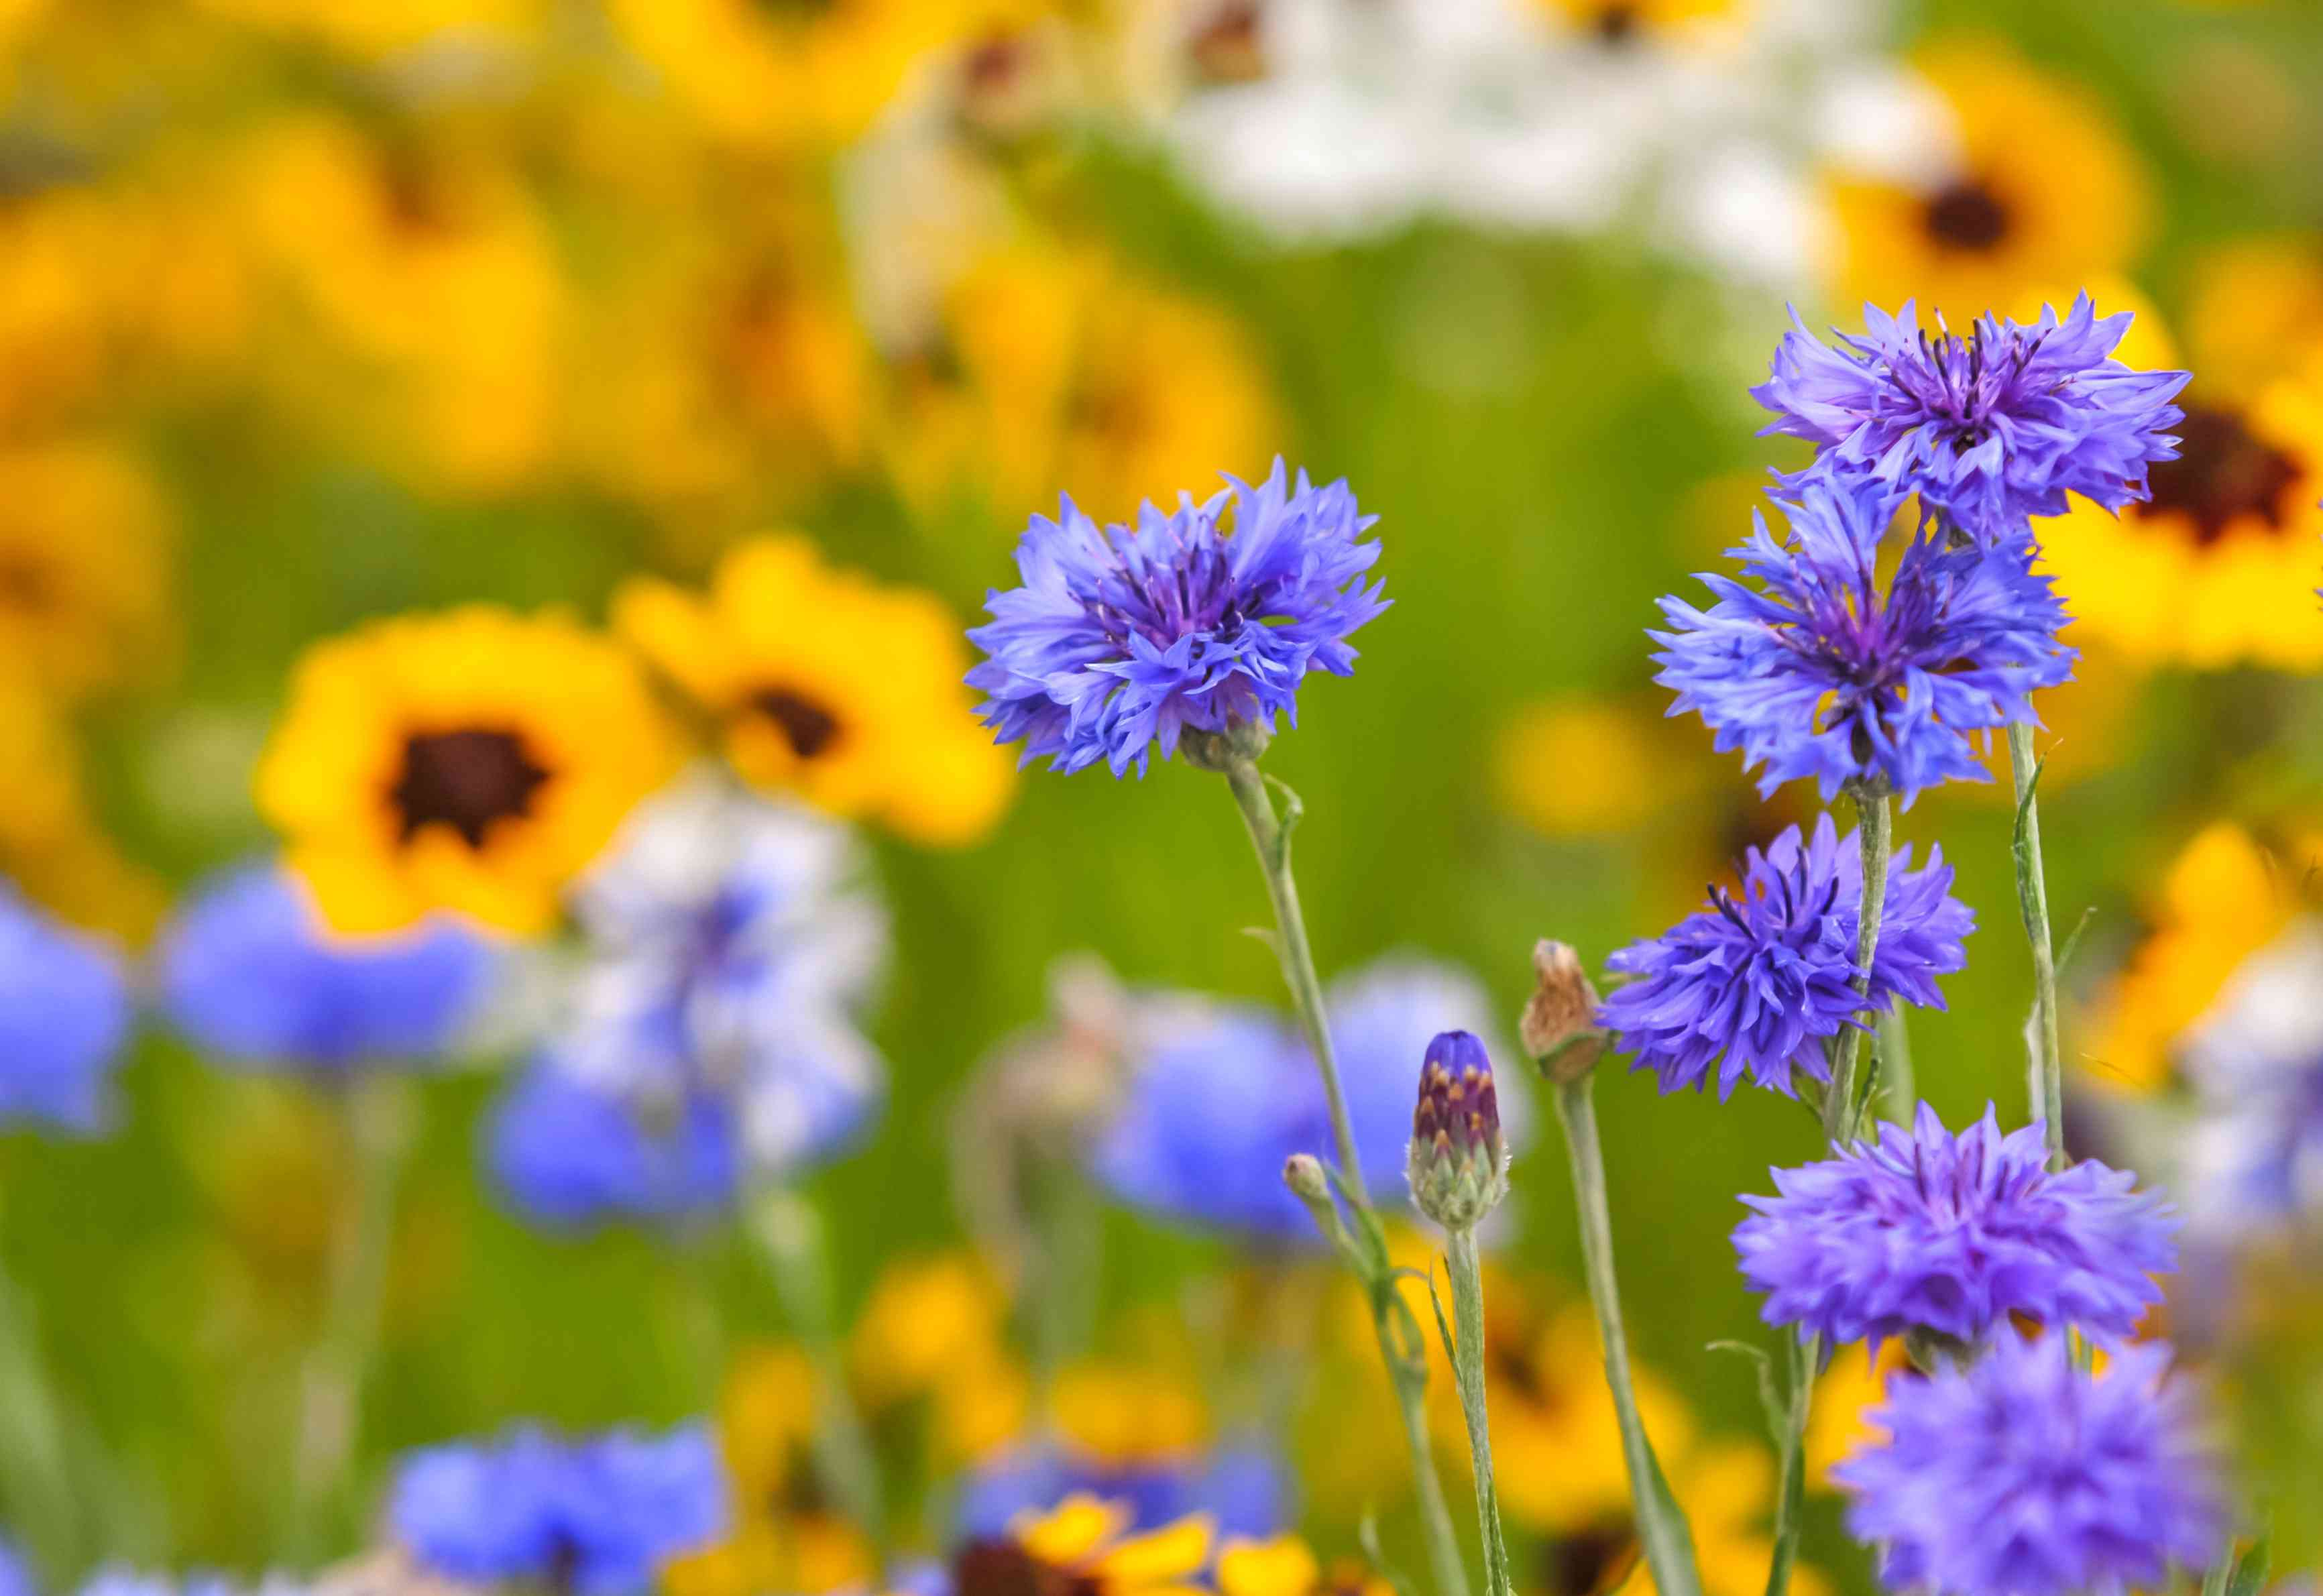 Cornflower with purple petals and buds in front of yellow flowers